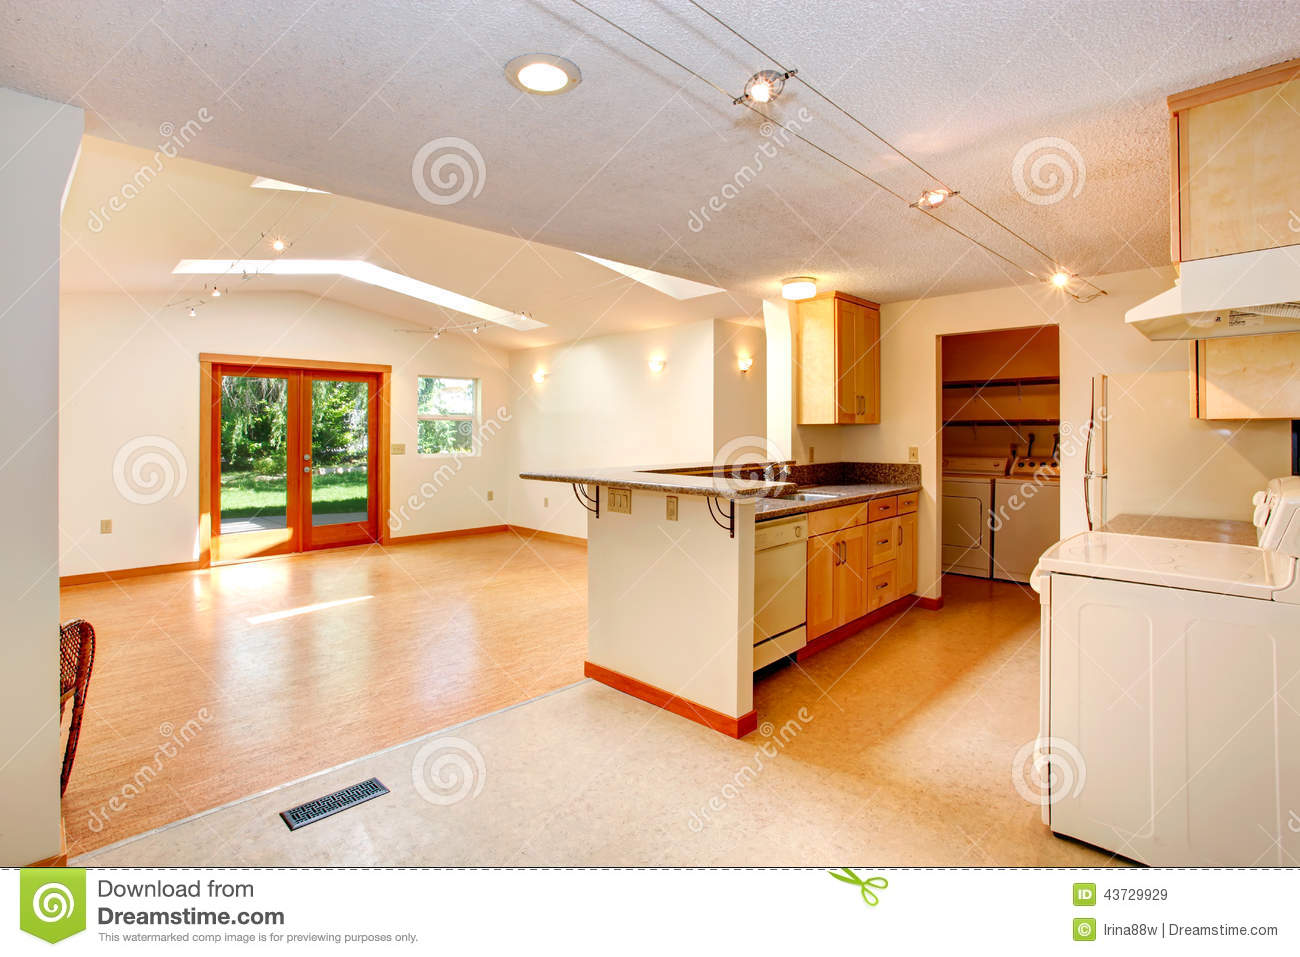 Open Floor Plan House With Open Floor Plan Kitchen And Living Room Stock Photo